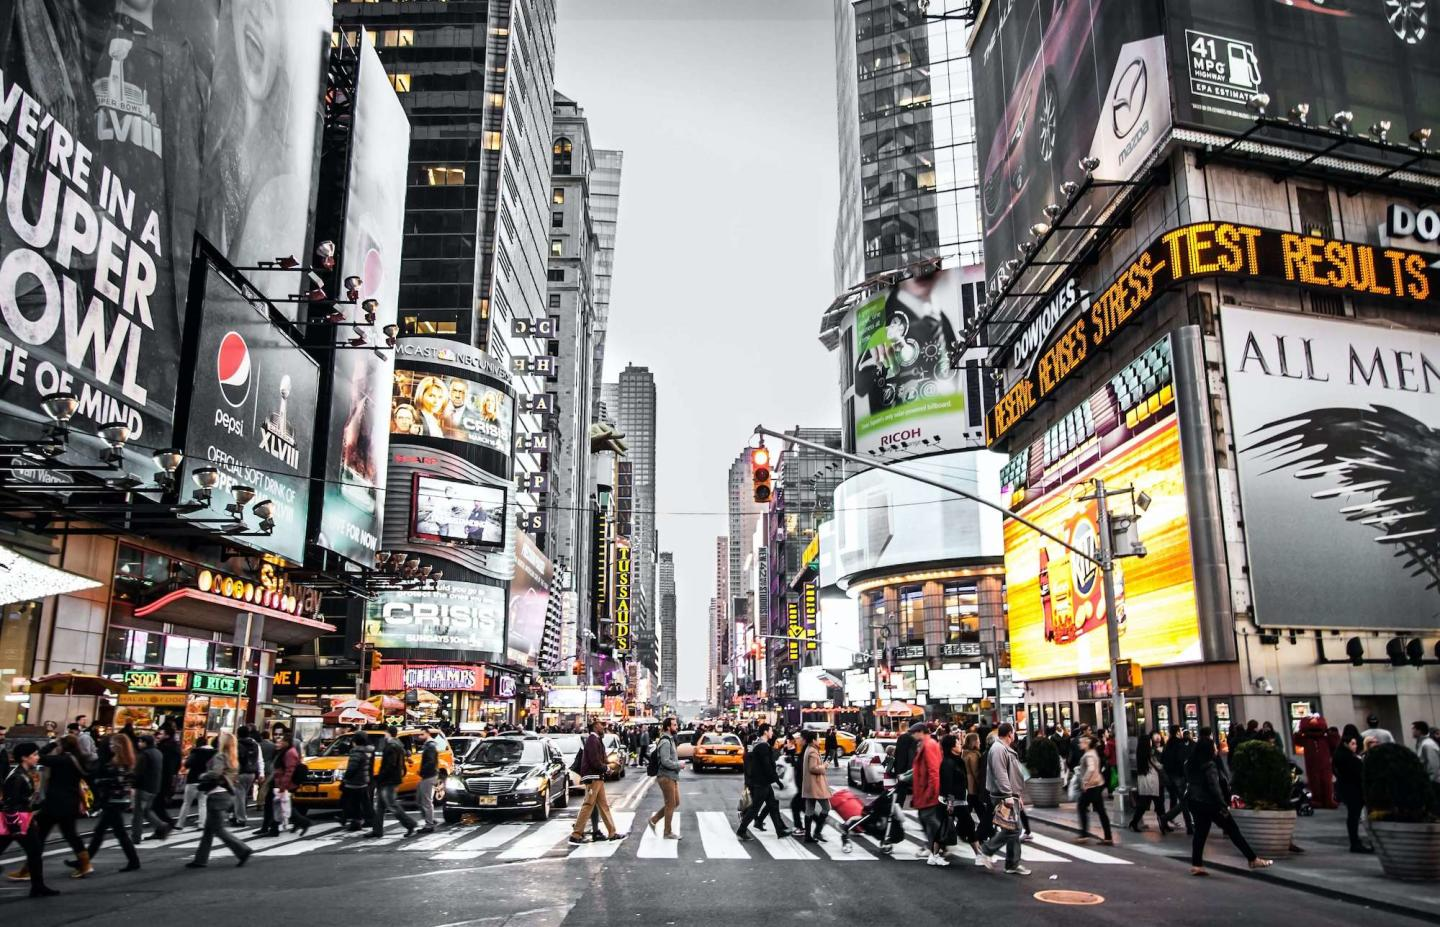 black and white background with advertisements in New York City in color